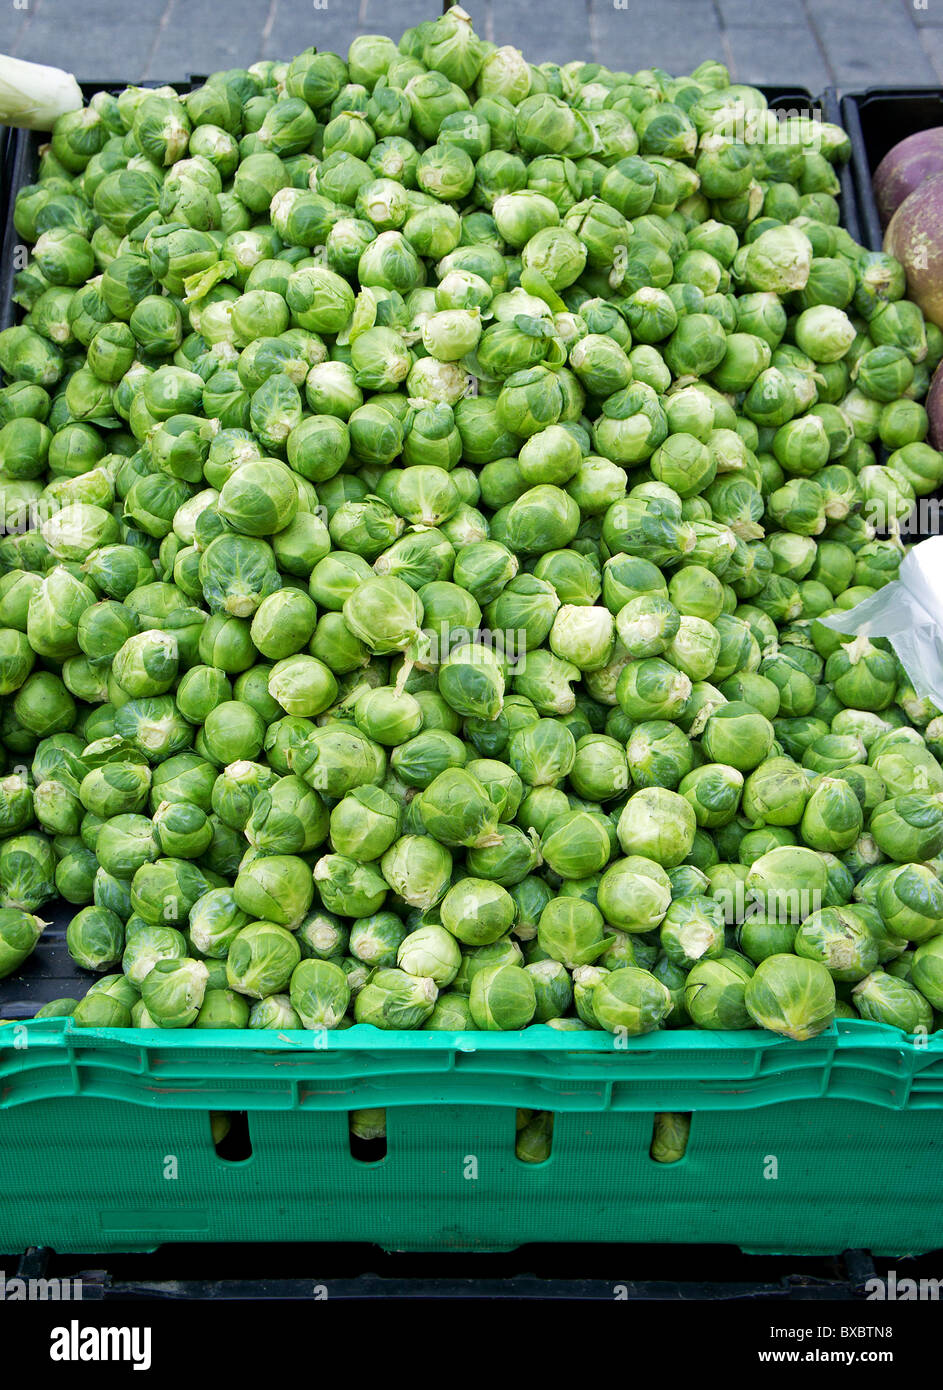 fresh sprouts on a market stall, uk - Stock Image